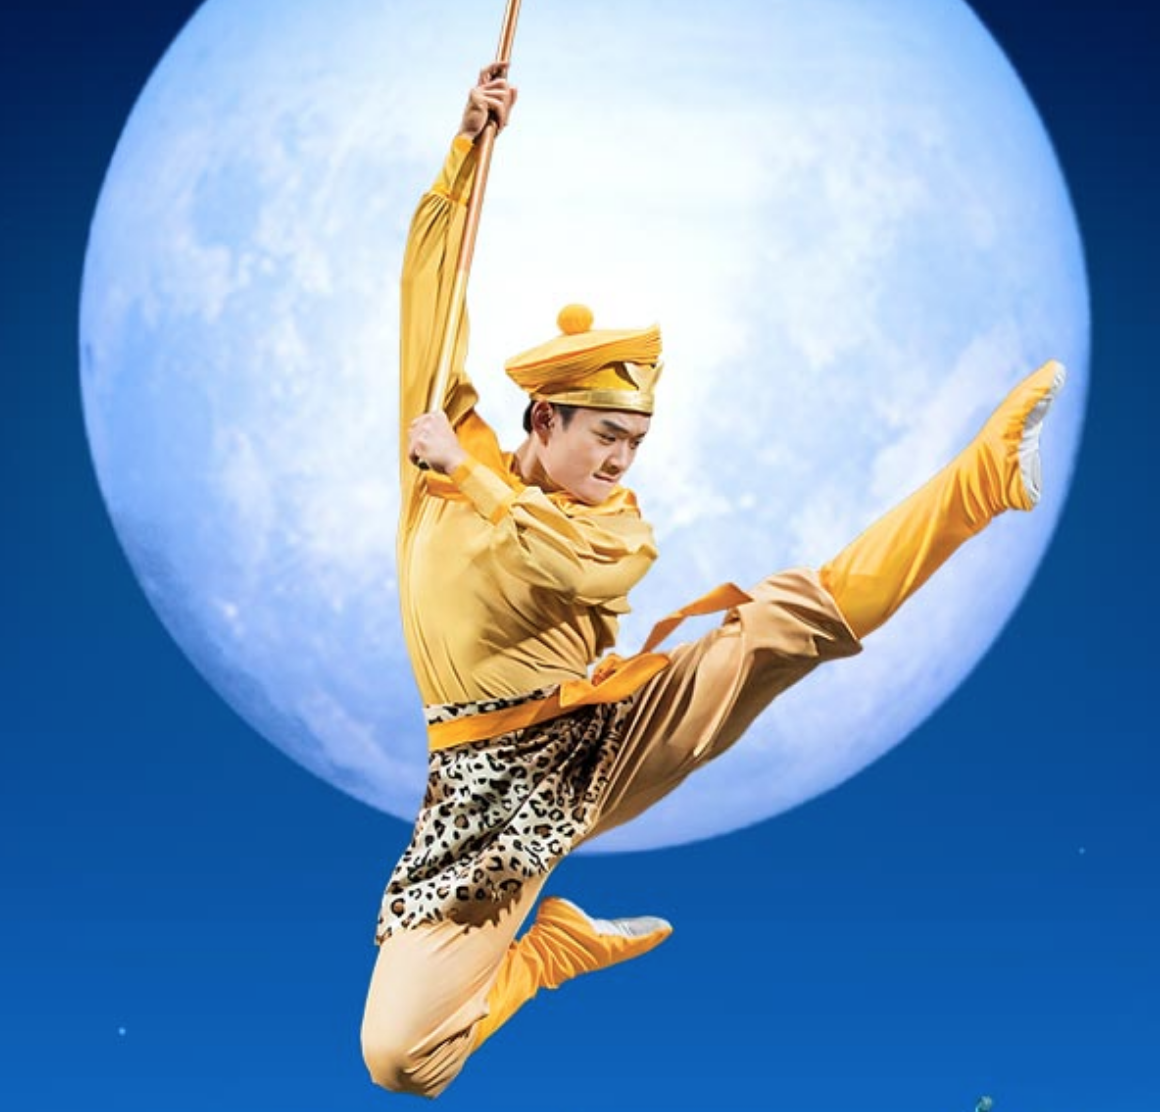 Huang Jingzhou as the Monkey King. (Image: Shen Yun Performing Arts)